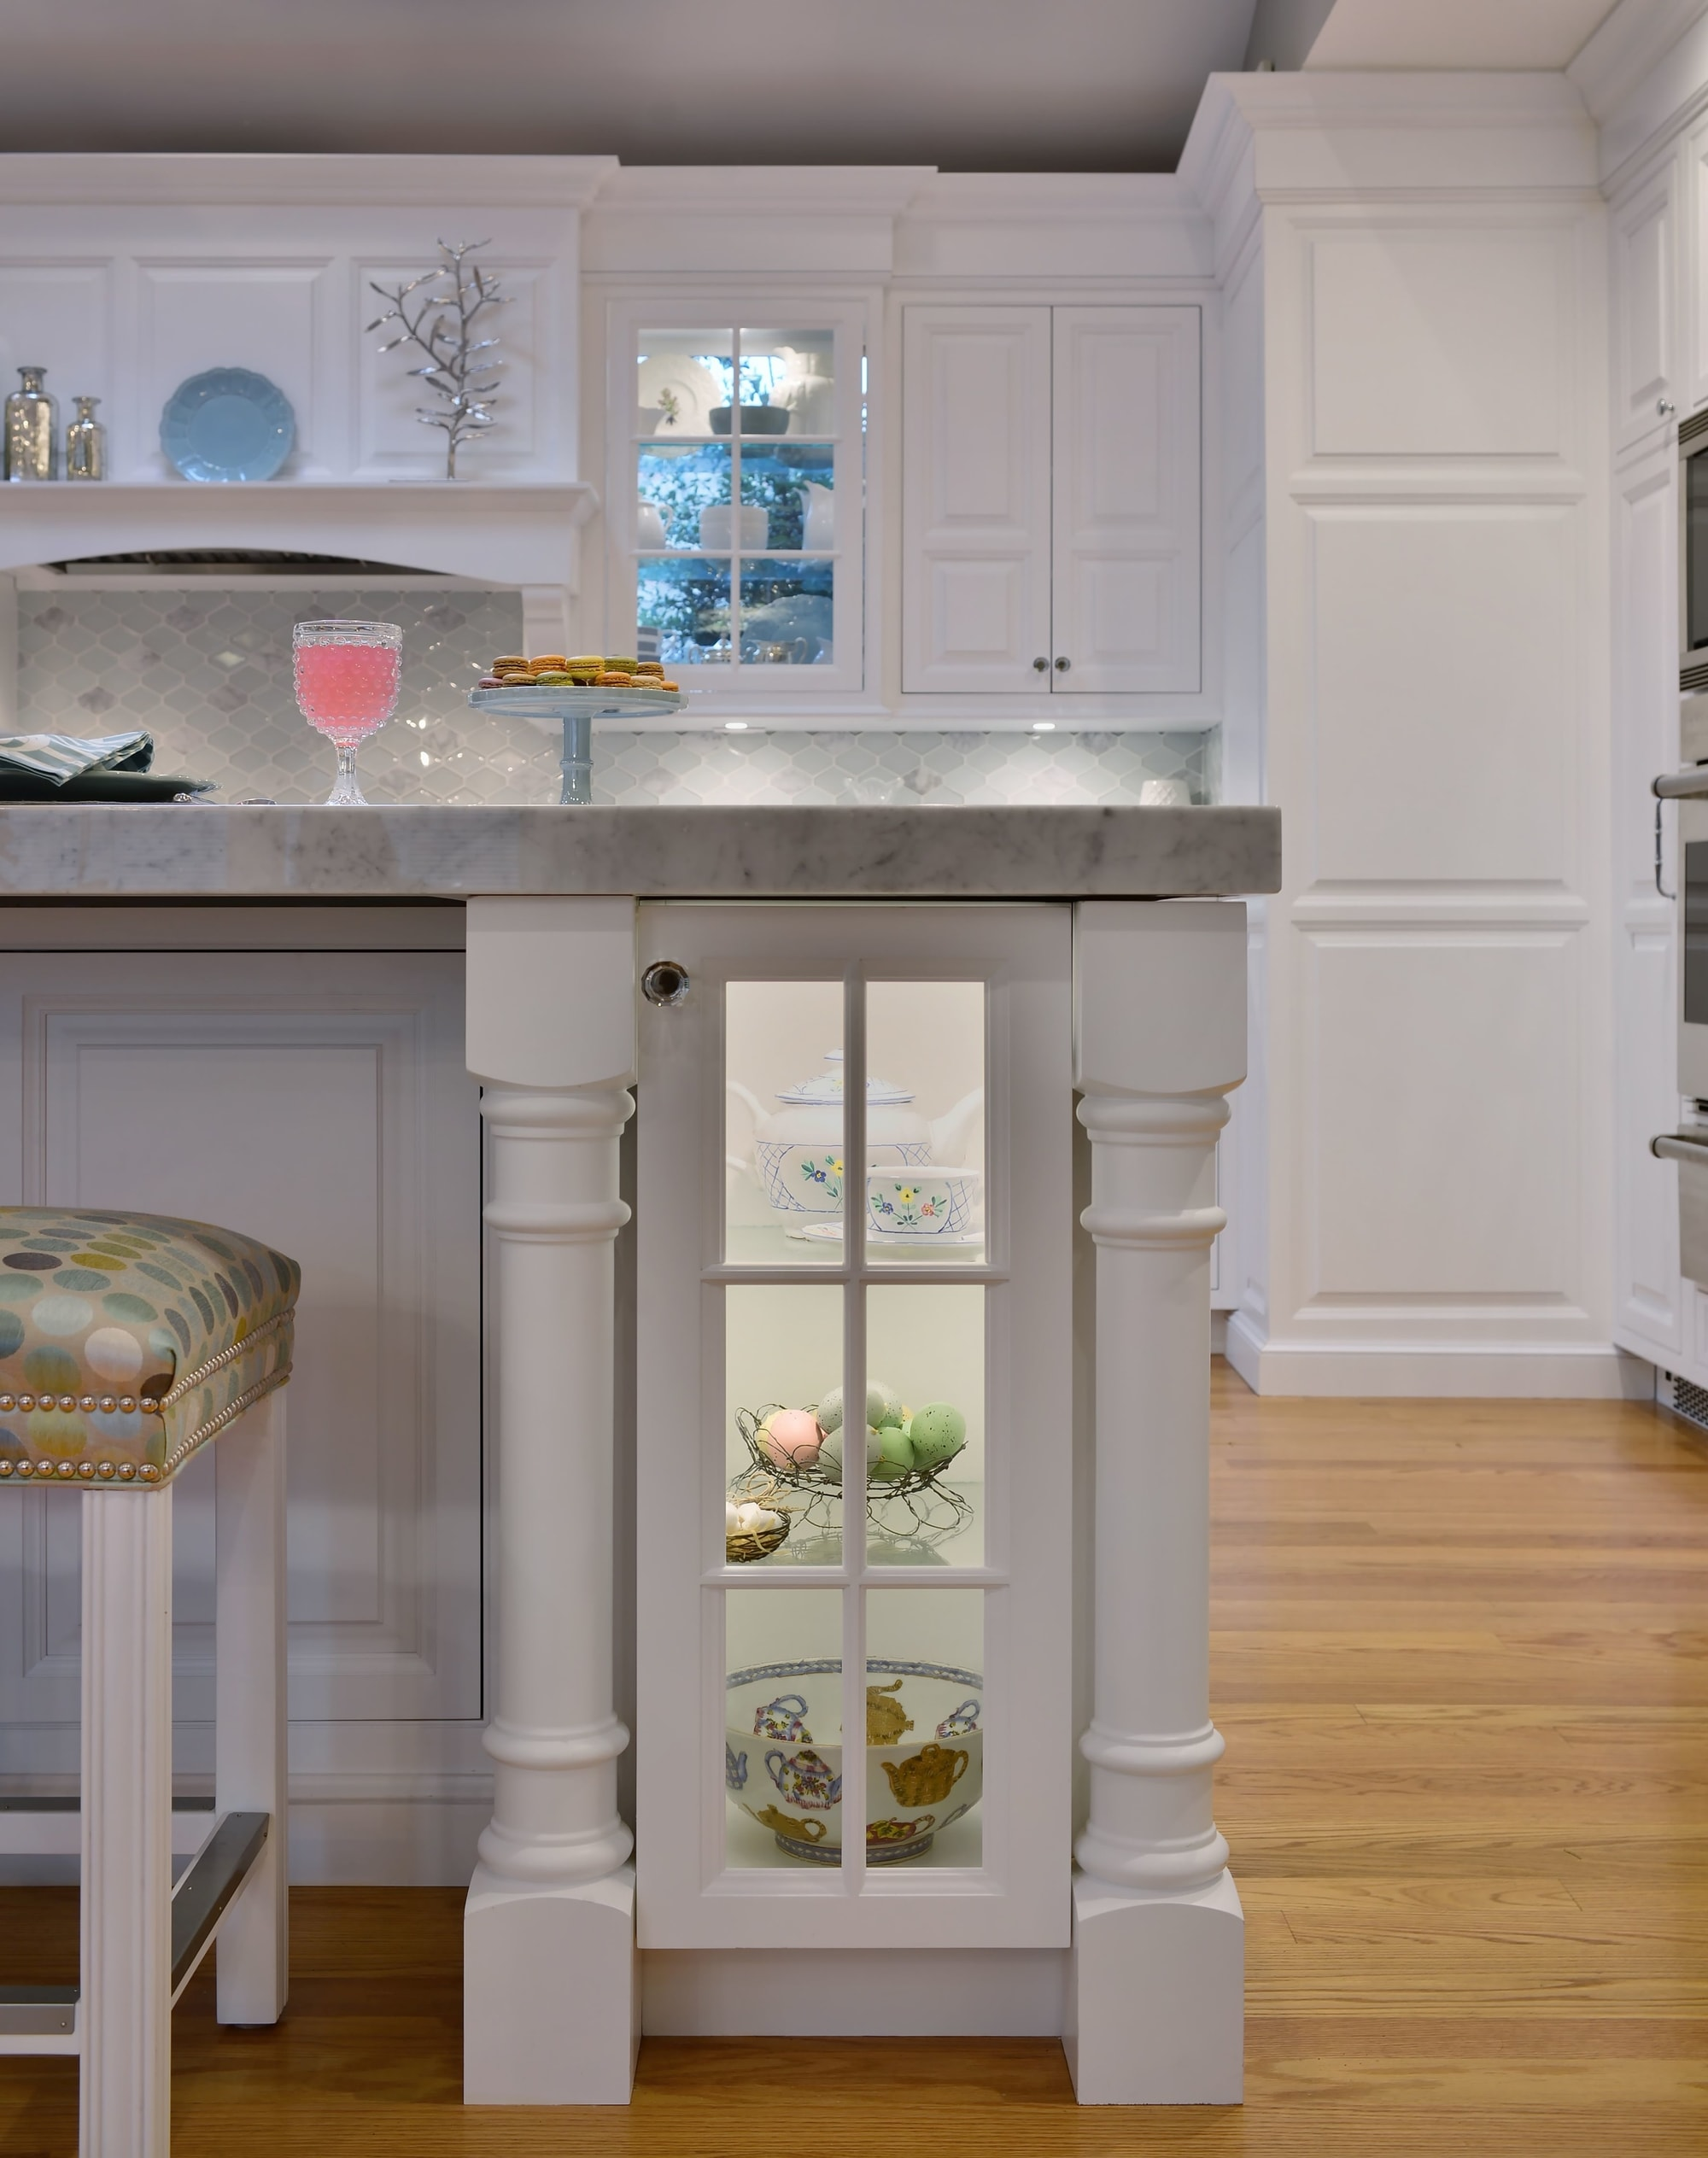 Transitional style kitchen with under counter glass door storage